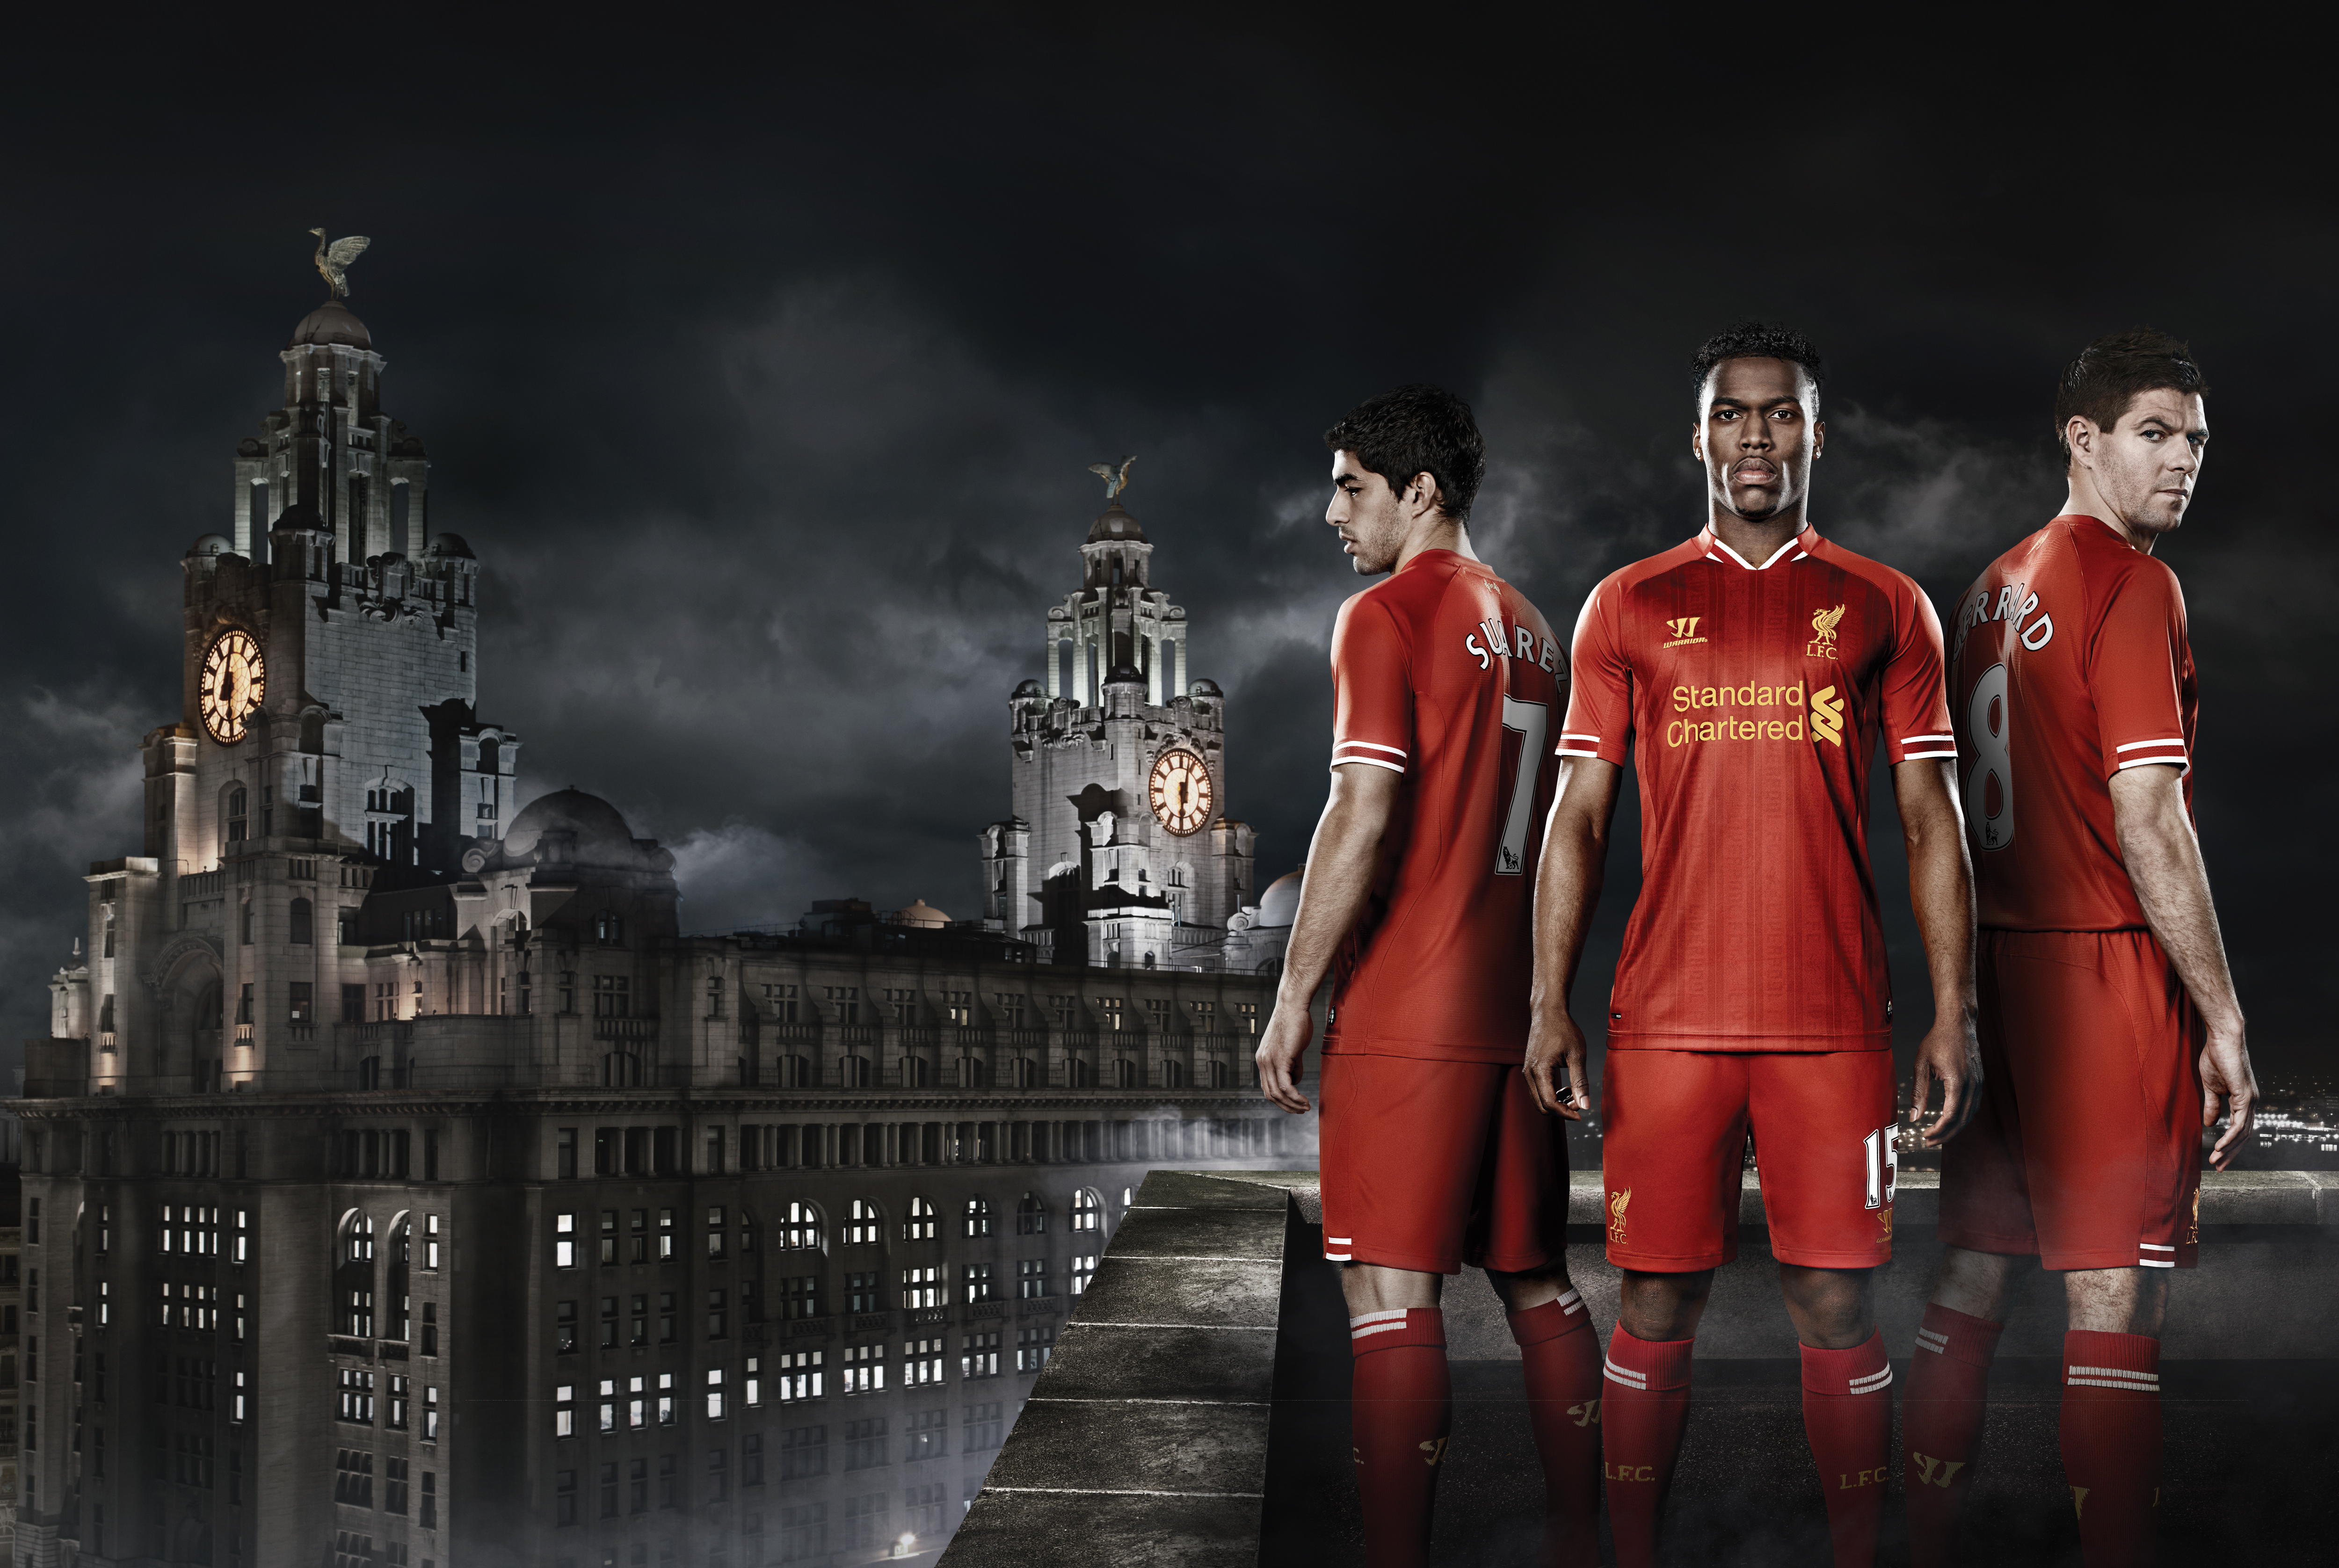 Liverpool f c 4k ultra hd wallpaper background image 5000x3352 id 752569 wallpaper abyss - Suarez liverpool wallpaper ...